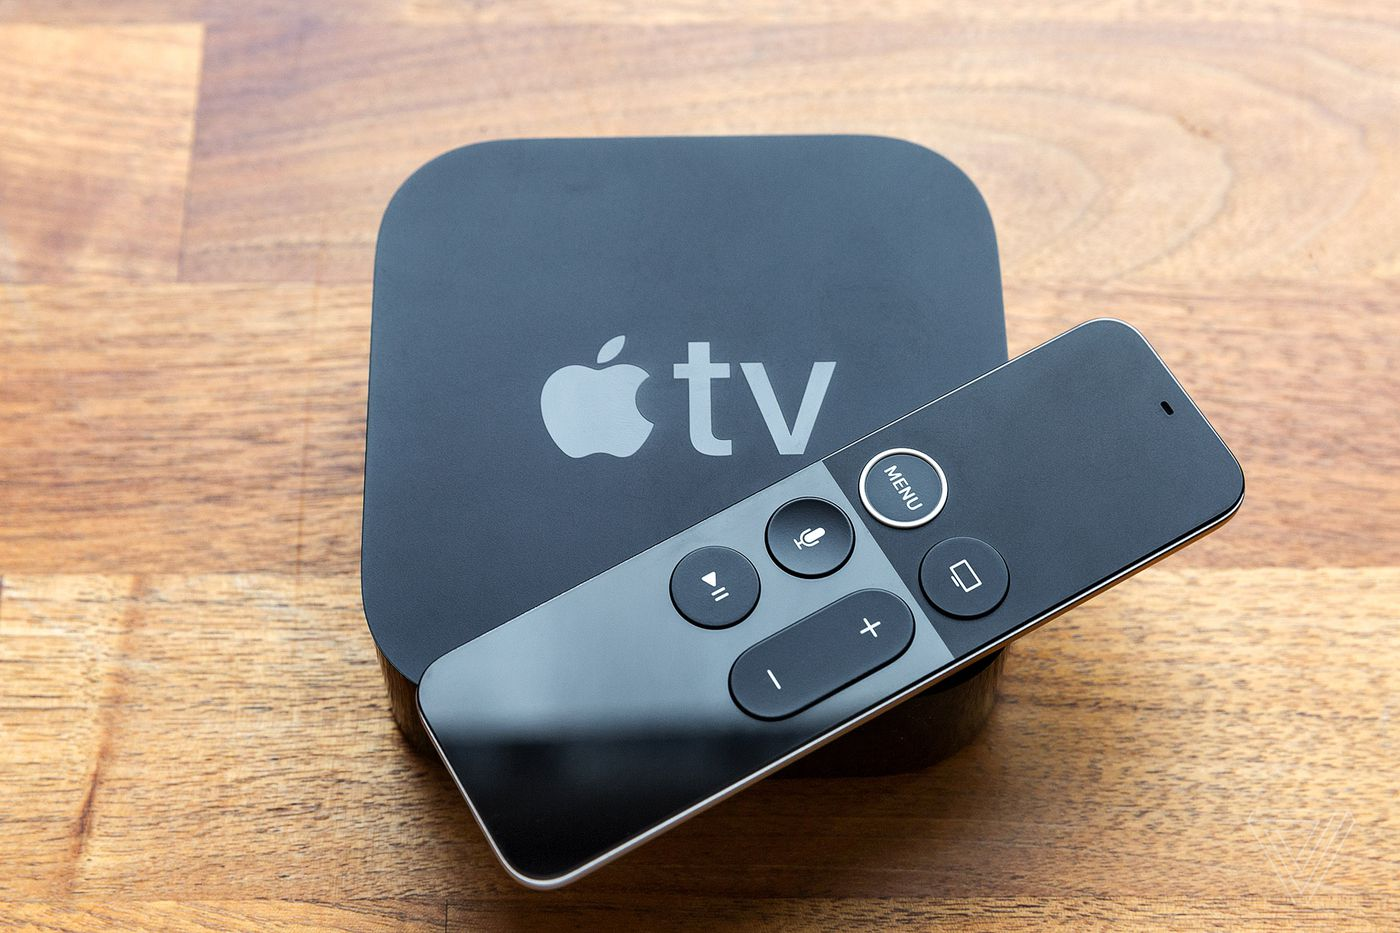 Apple TV 4K review: so close, so far - The Verge